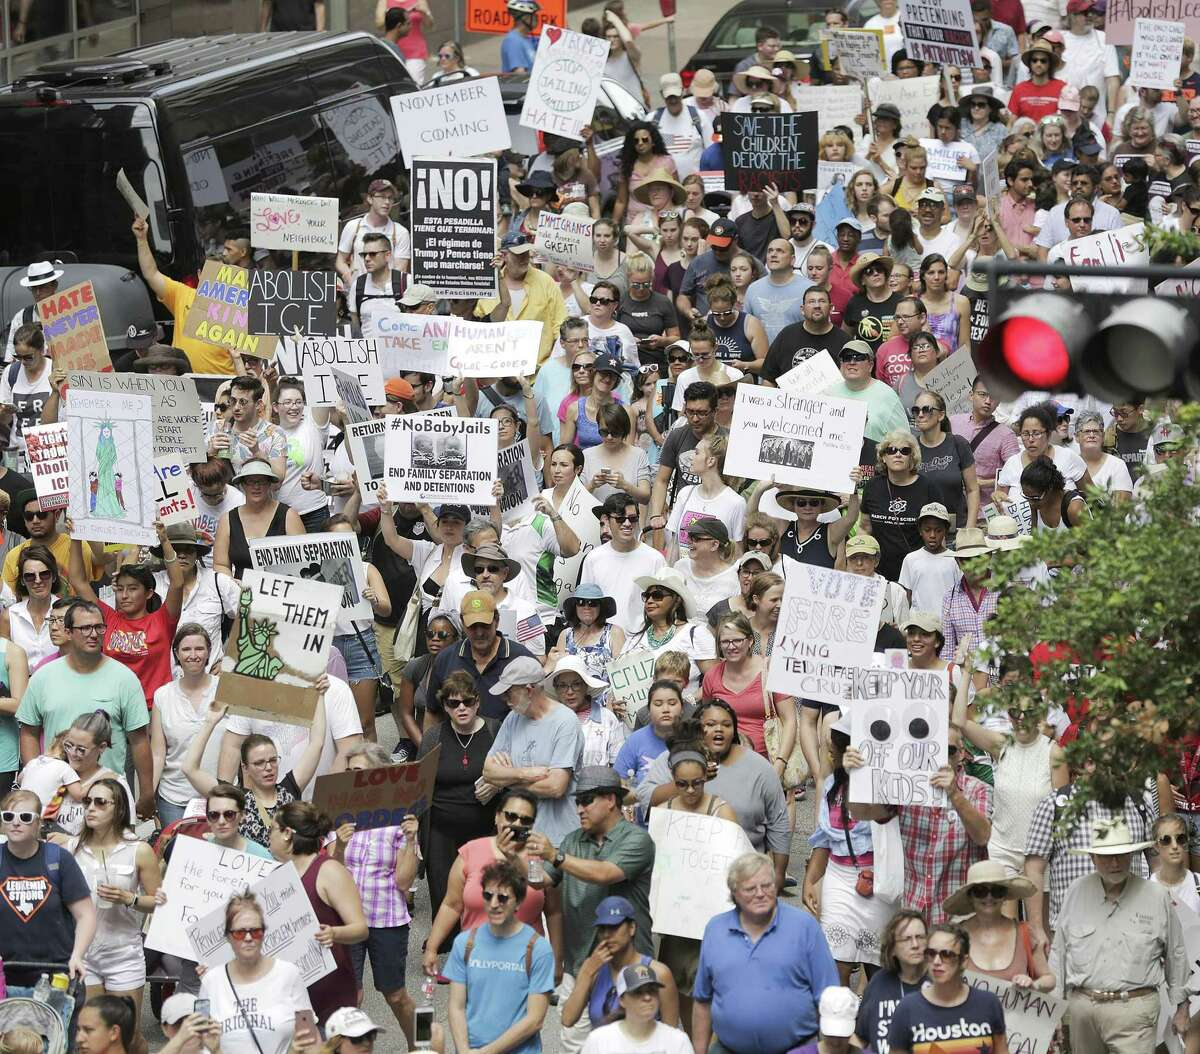 """Protestors fill Walker Street as they march for immigration reform in Houston on Saturday, June 30, 2018 in Houston. Rallies were held across the nation calling on federal agencies to reunite families separated at the border under Trump's """"zero tolerance"""" policy, as well as calling for the abolishment of ICE. (Elizabeth Conley/Houston Chronicle)"""